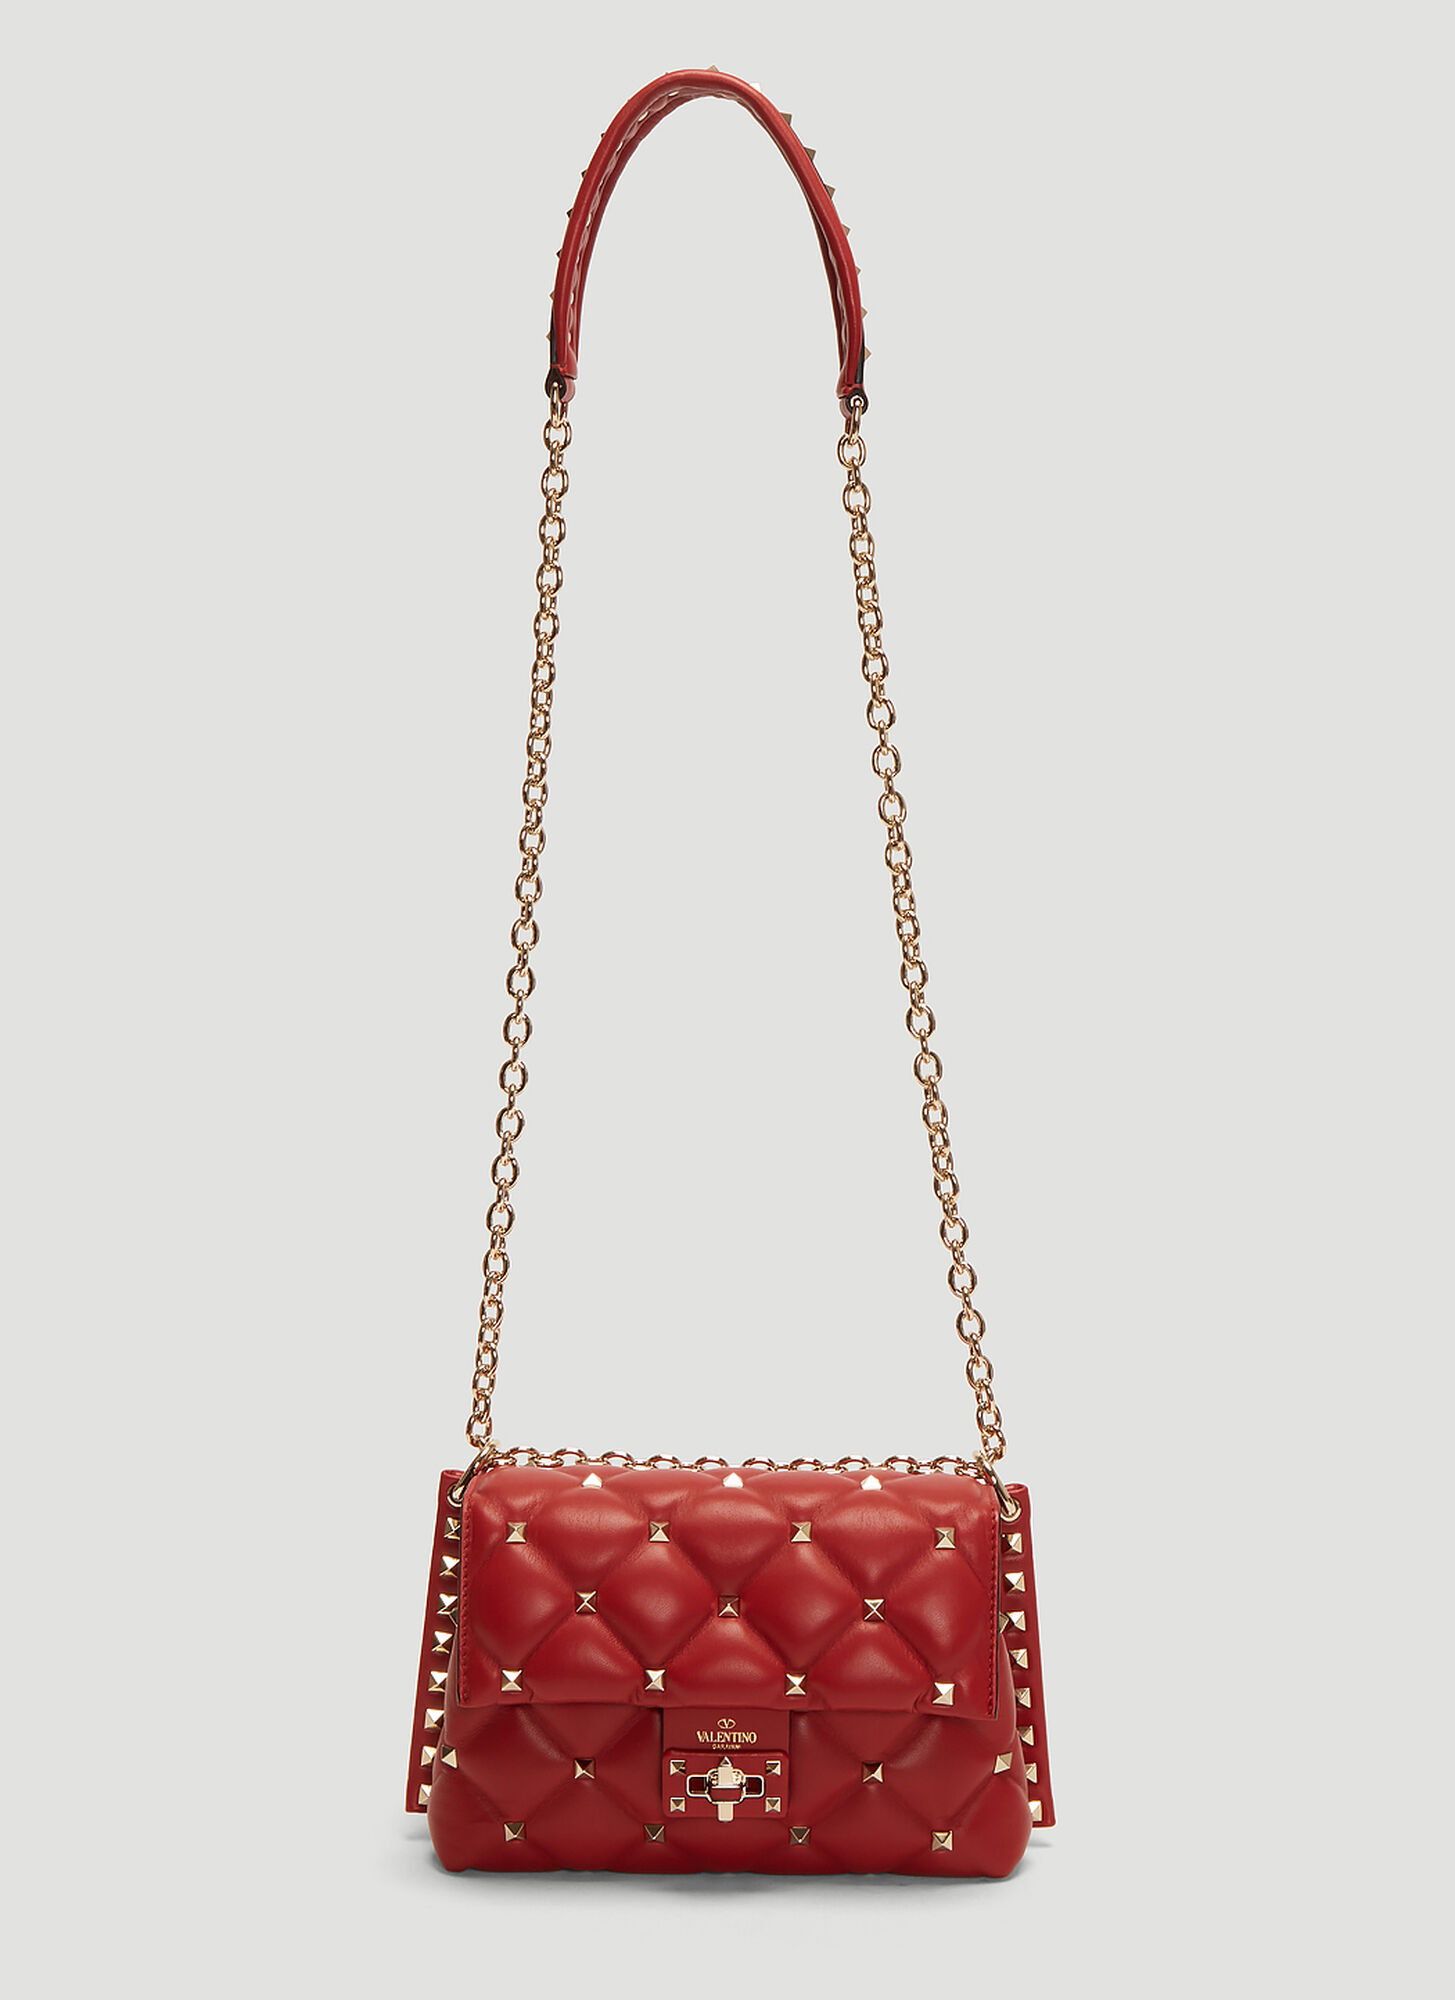 Photo of Valentino Small Candystud Shoudler Bag in Red - Valentino Shoulder Bags